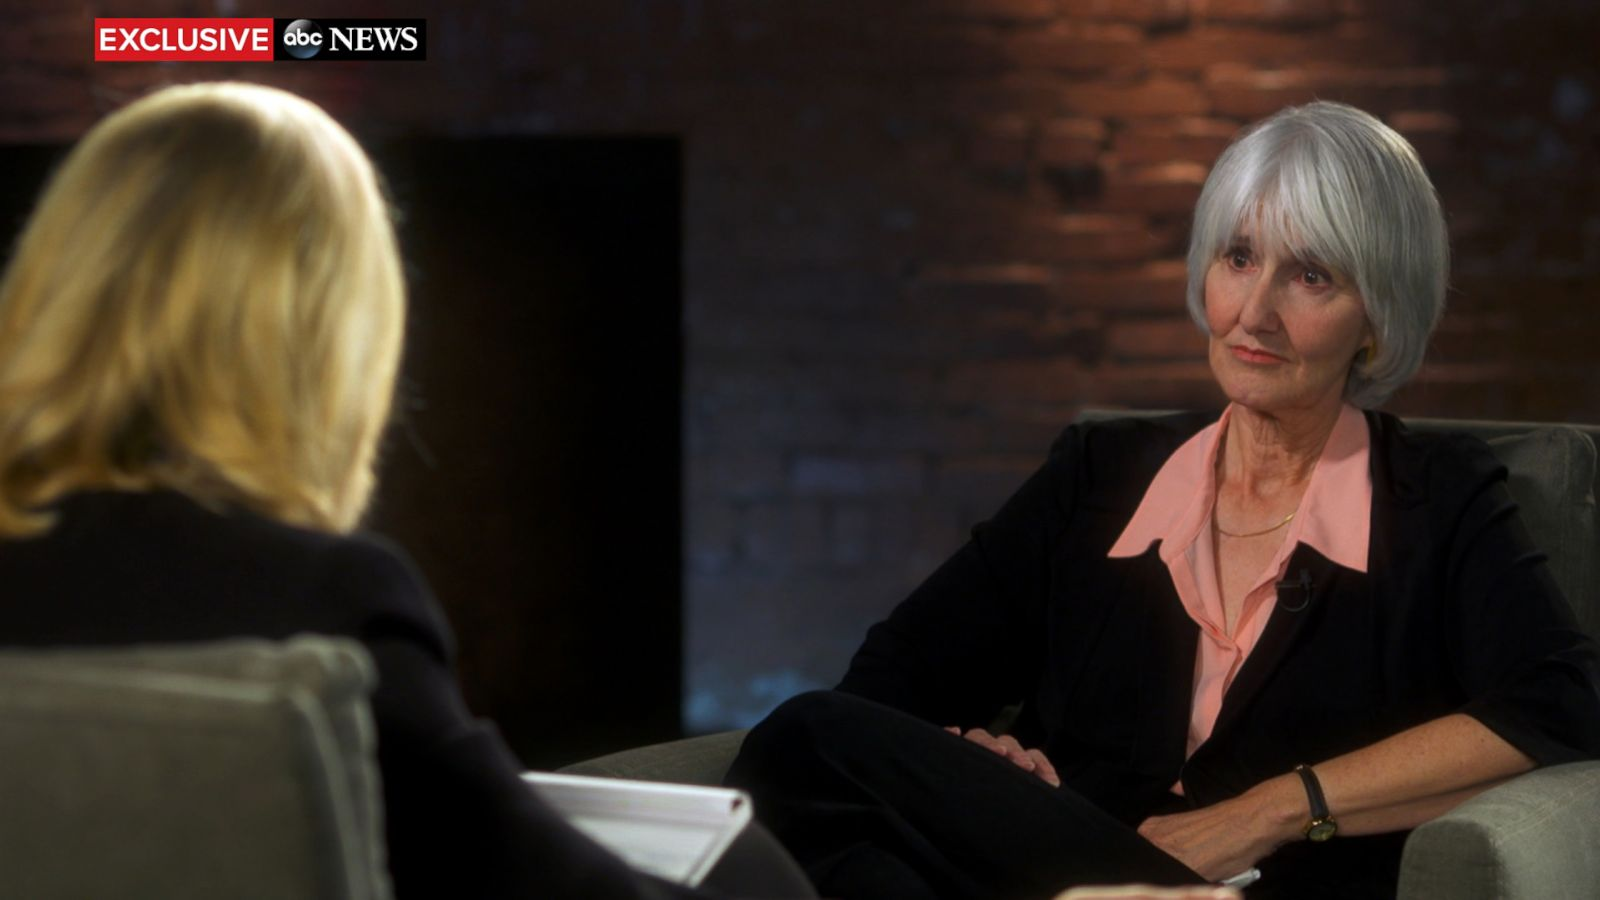 Columbine Killer's Mother Reflects on the Tragedy, Her Son, What She Missed